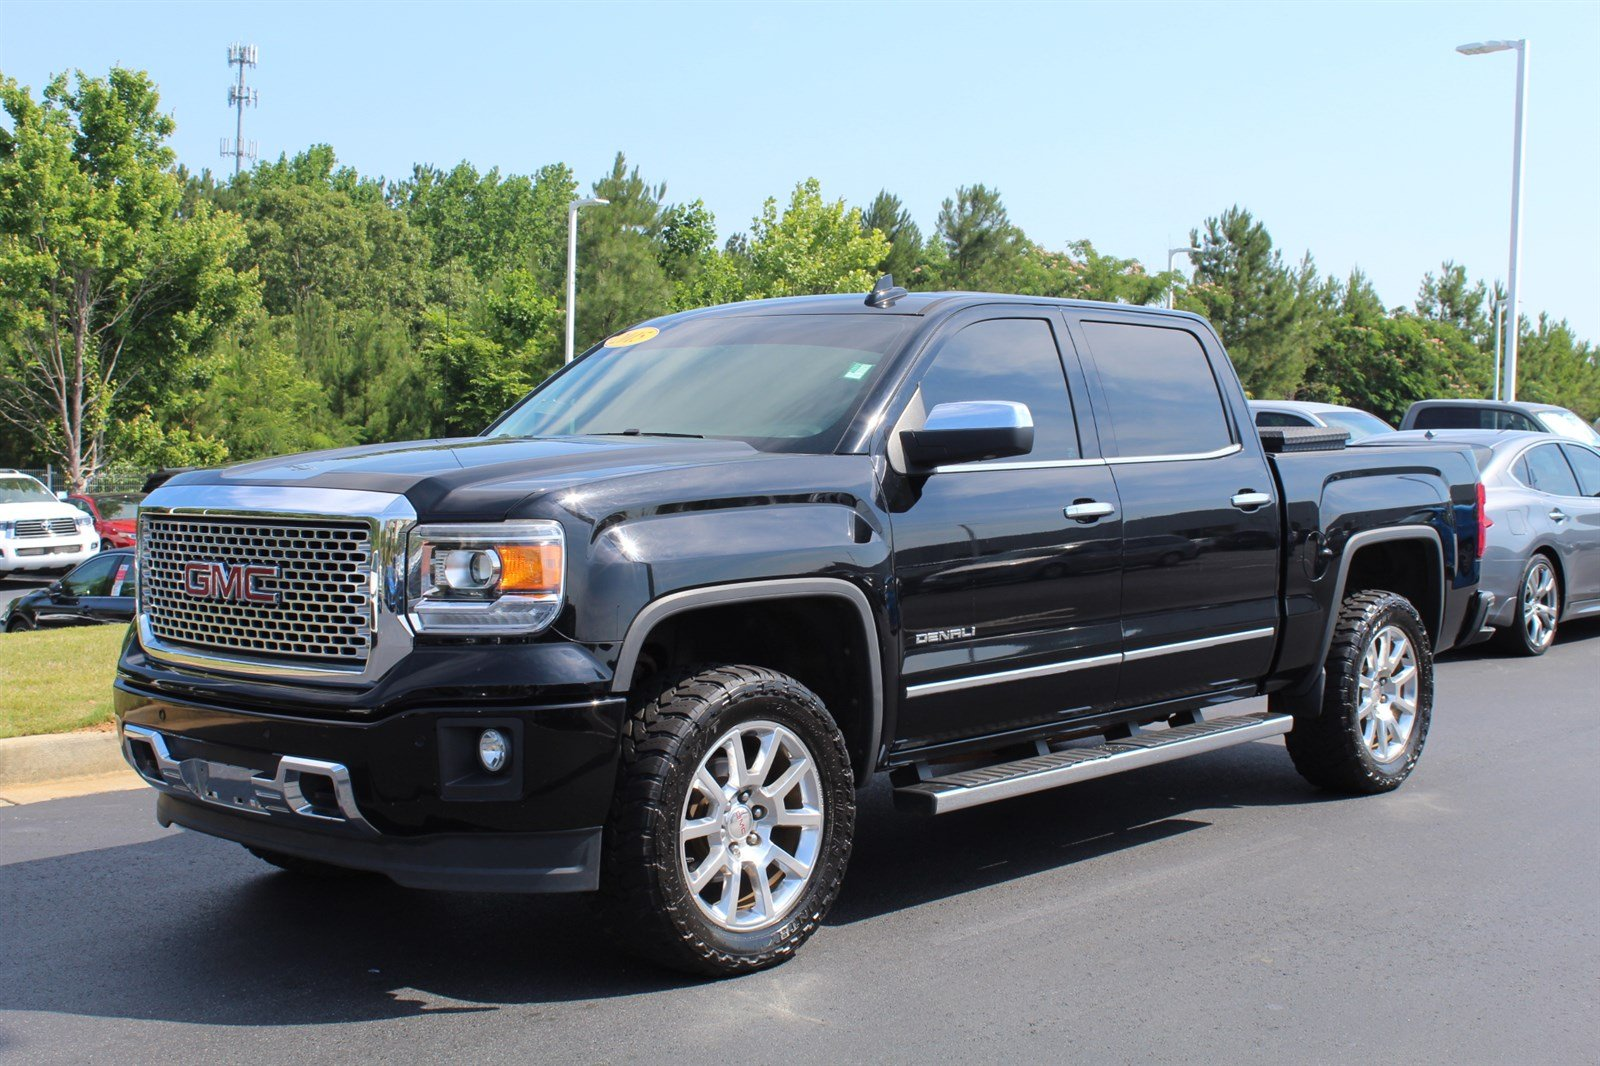 2015 Gmc Sierra Denali >> Pre Owned 2015 Gmc Sierra 1500 Denali Crew Cab Pickup For Sale